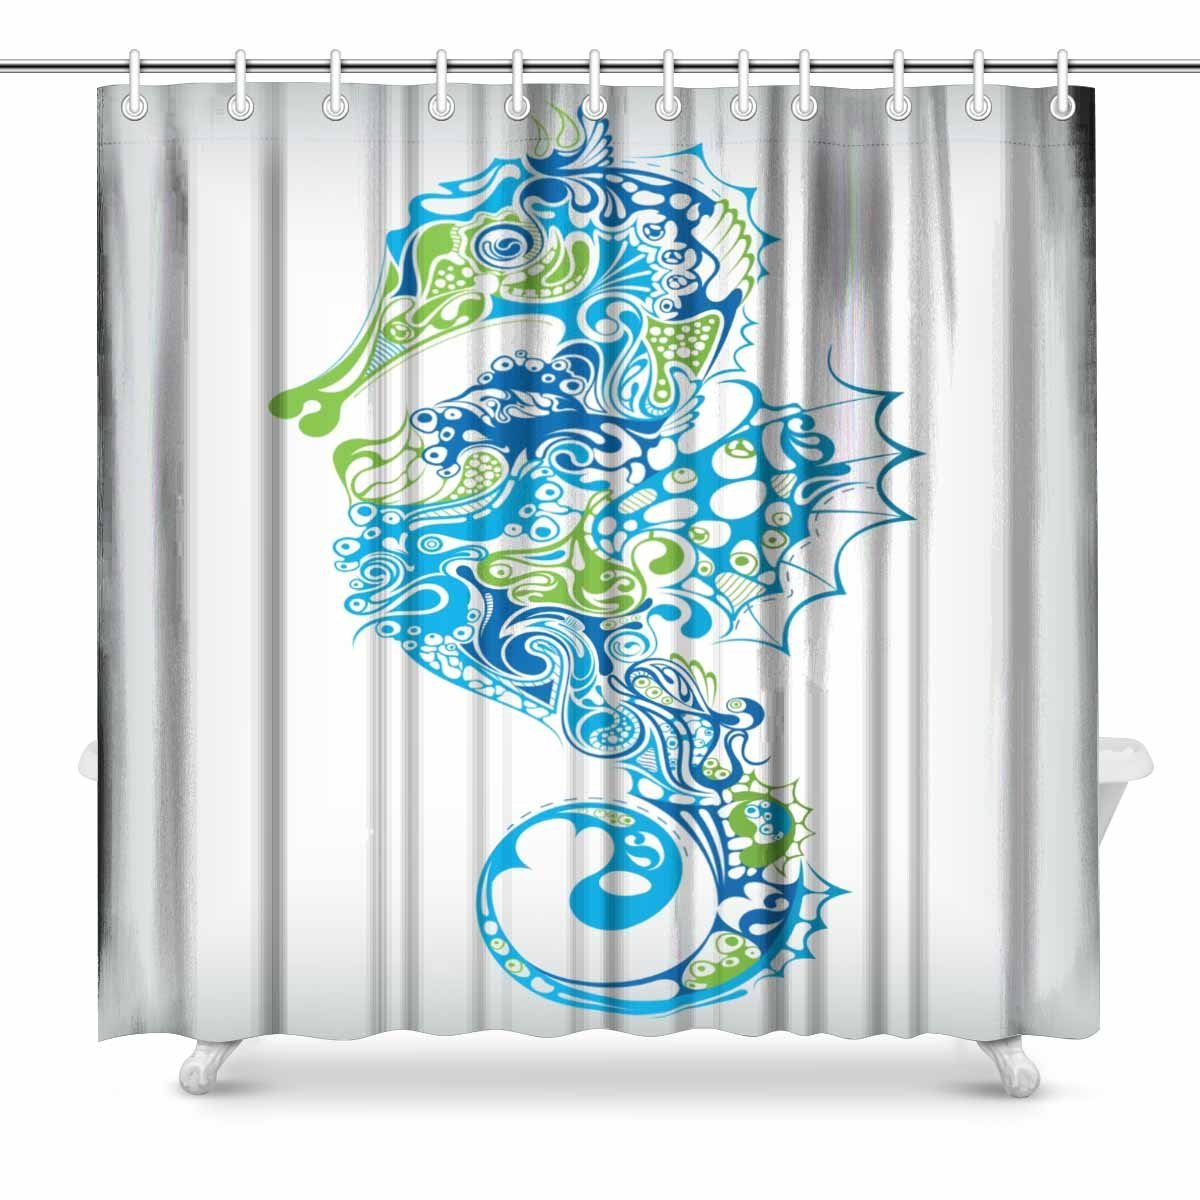 Aplysia Seahorse Bathroom Decor Shower Curtain Set With Hooks 72 Inches Long In Curtains From Home Garden On Aliexpress